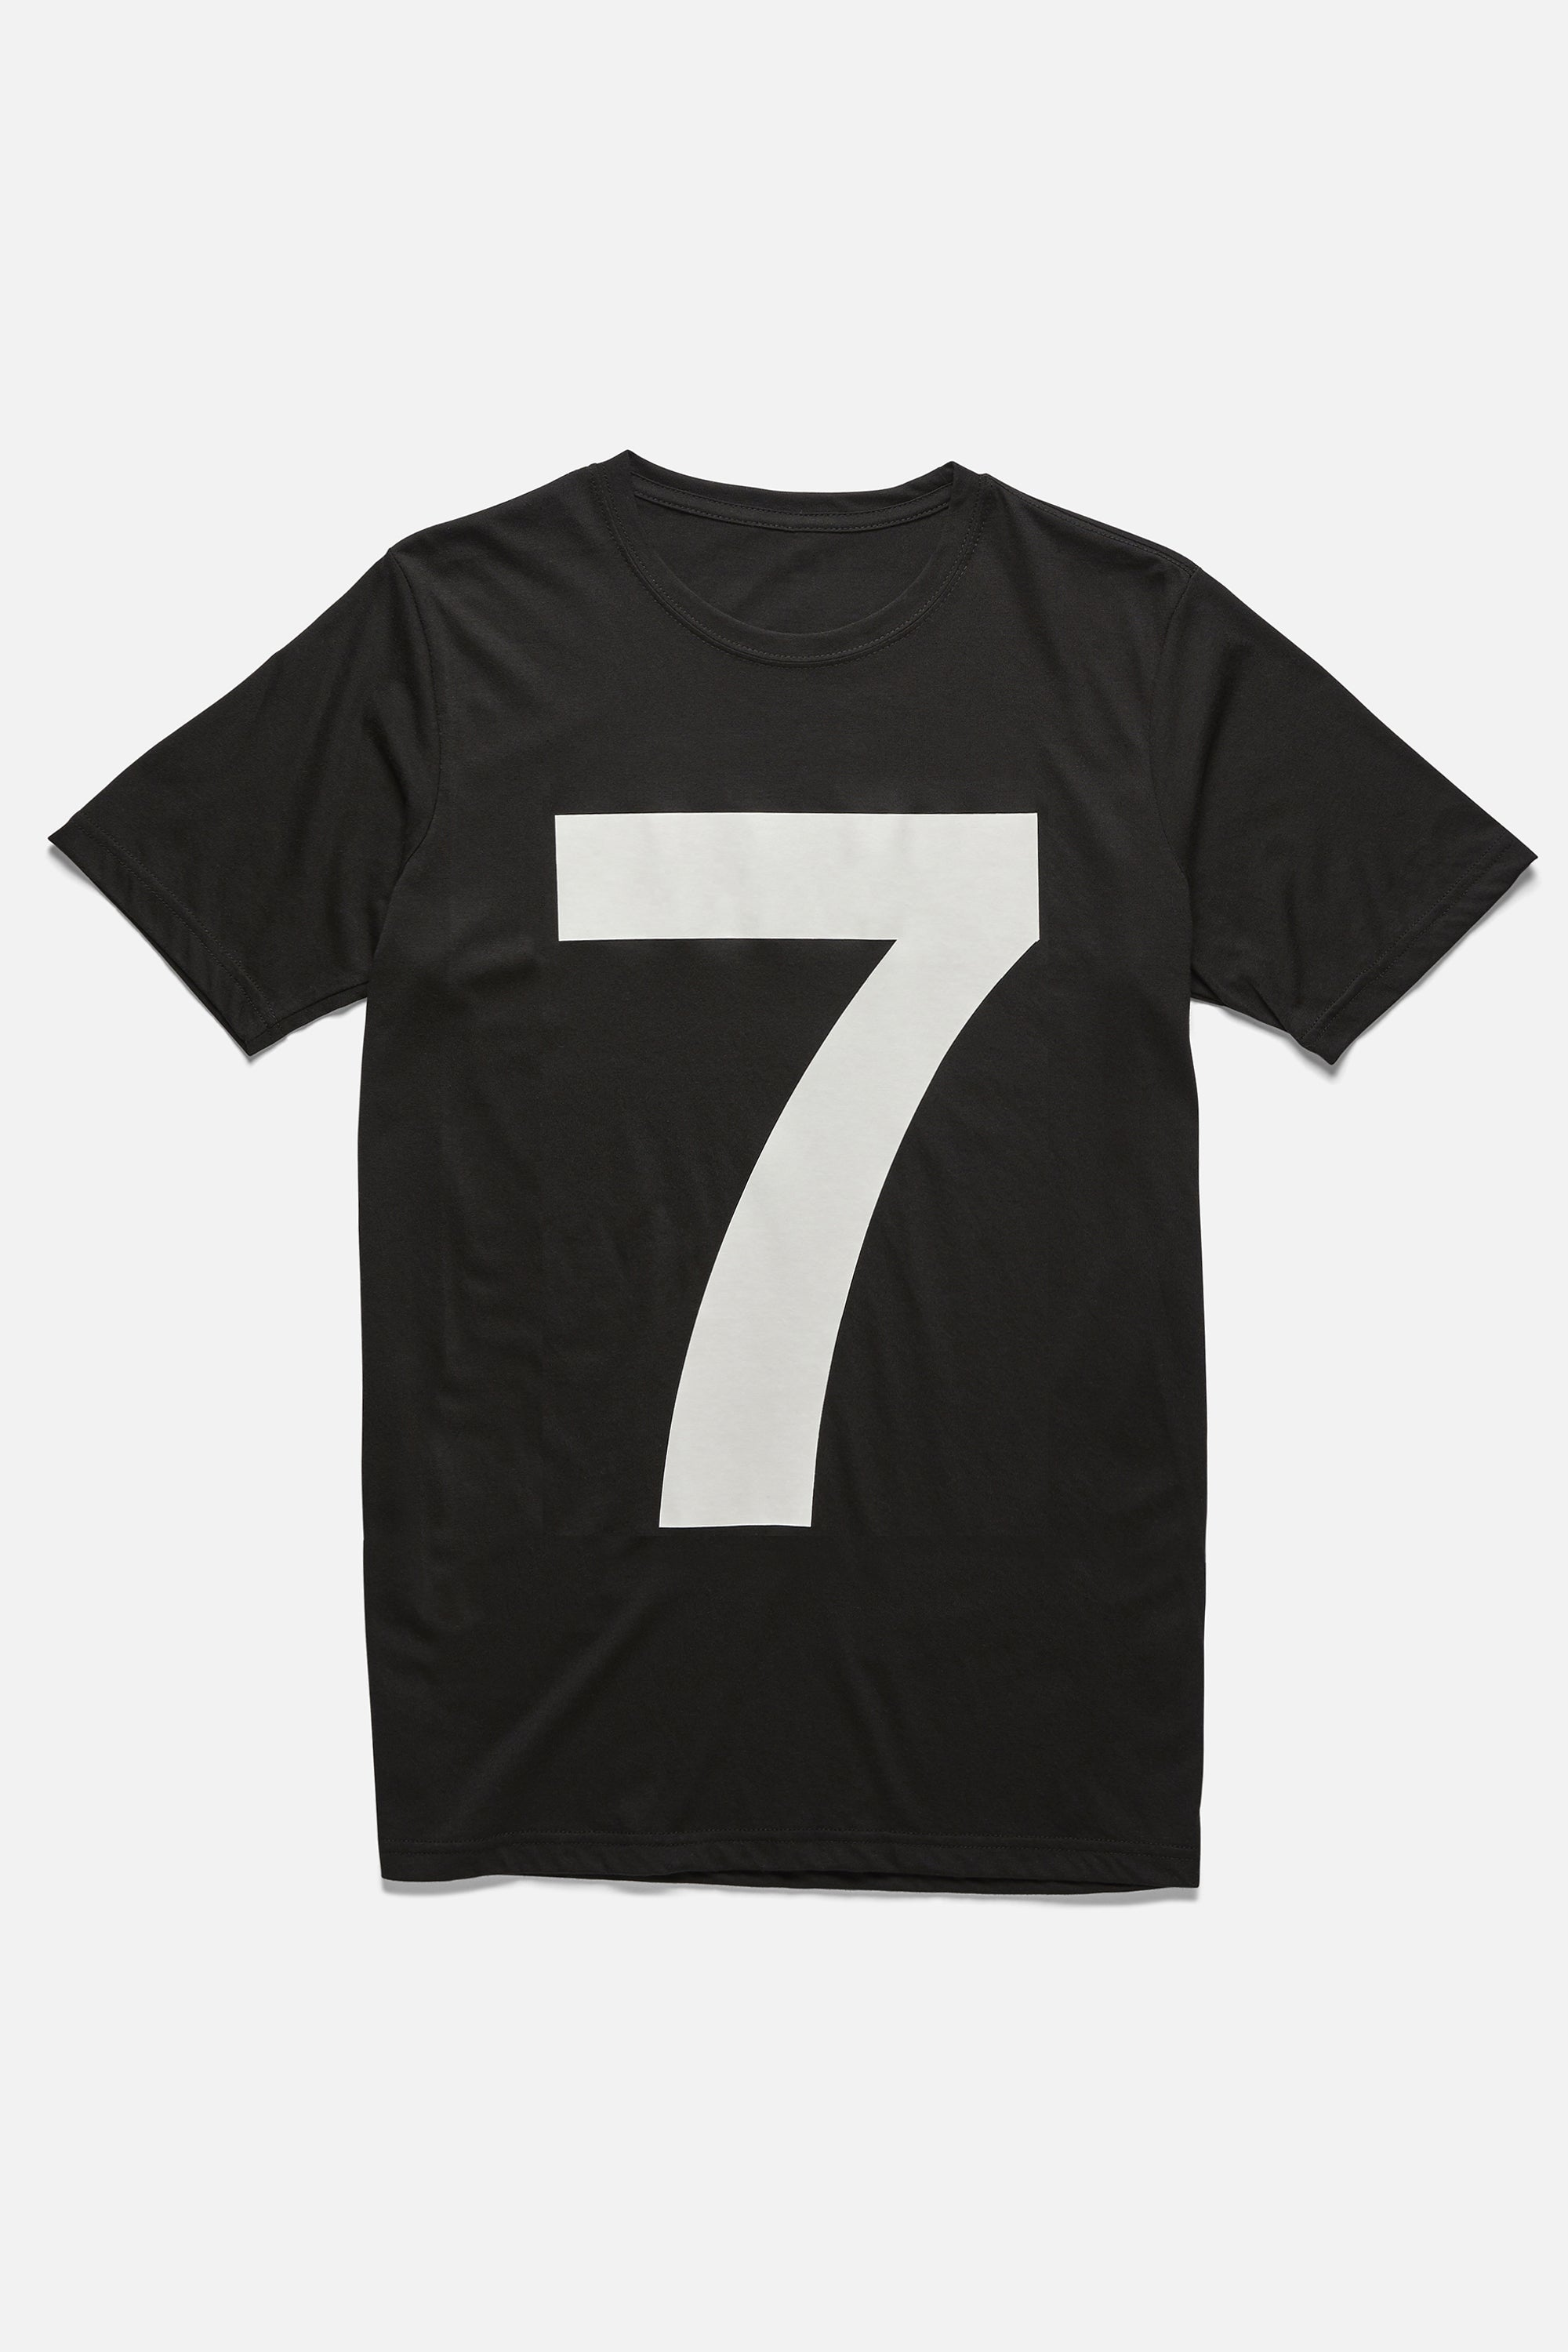 Mens black tee with oversized number 7 - white seven t-shirt